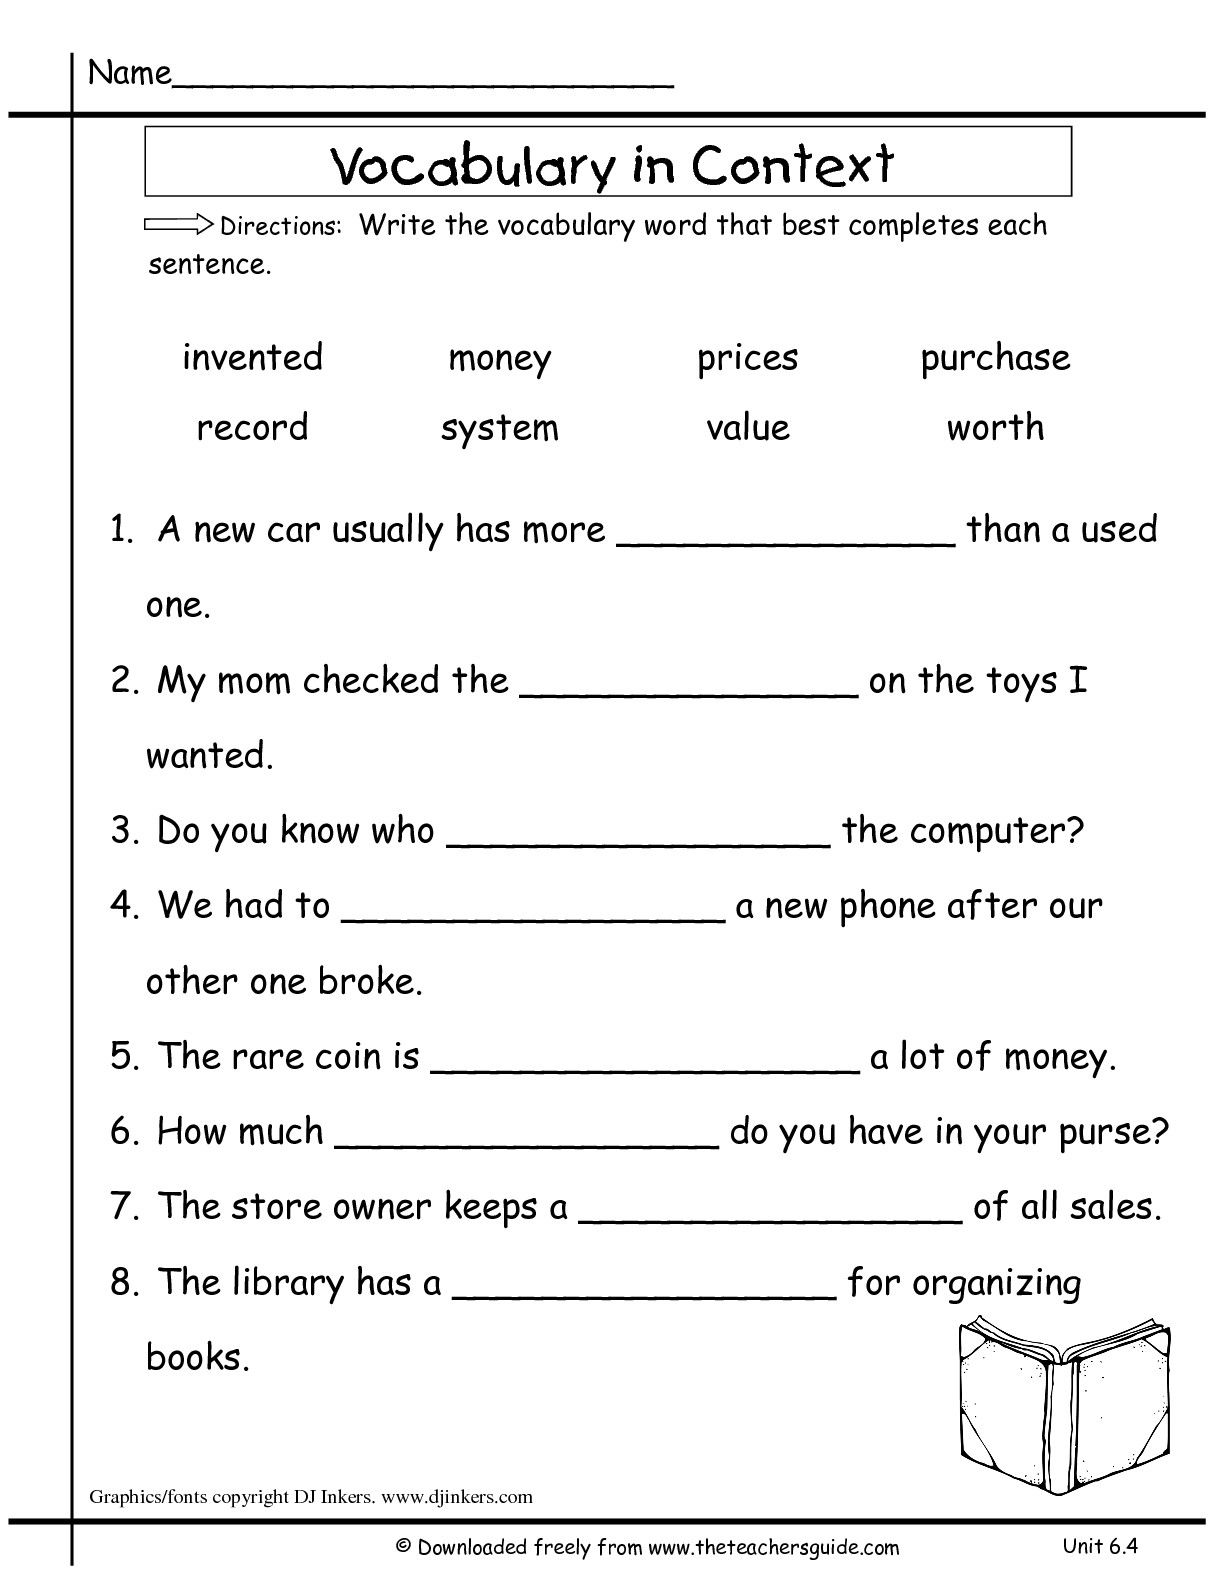 Image Result For Vocabulary Word Worksheet Grade 7 With